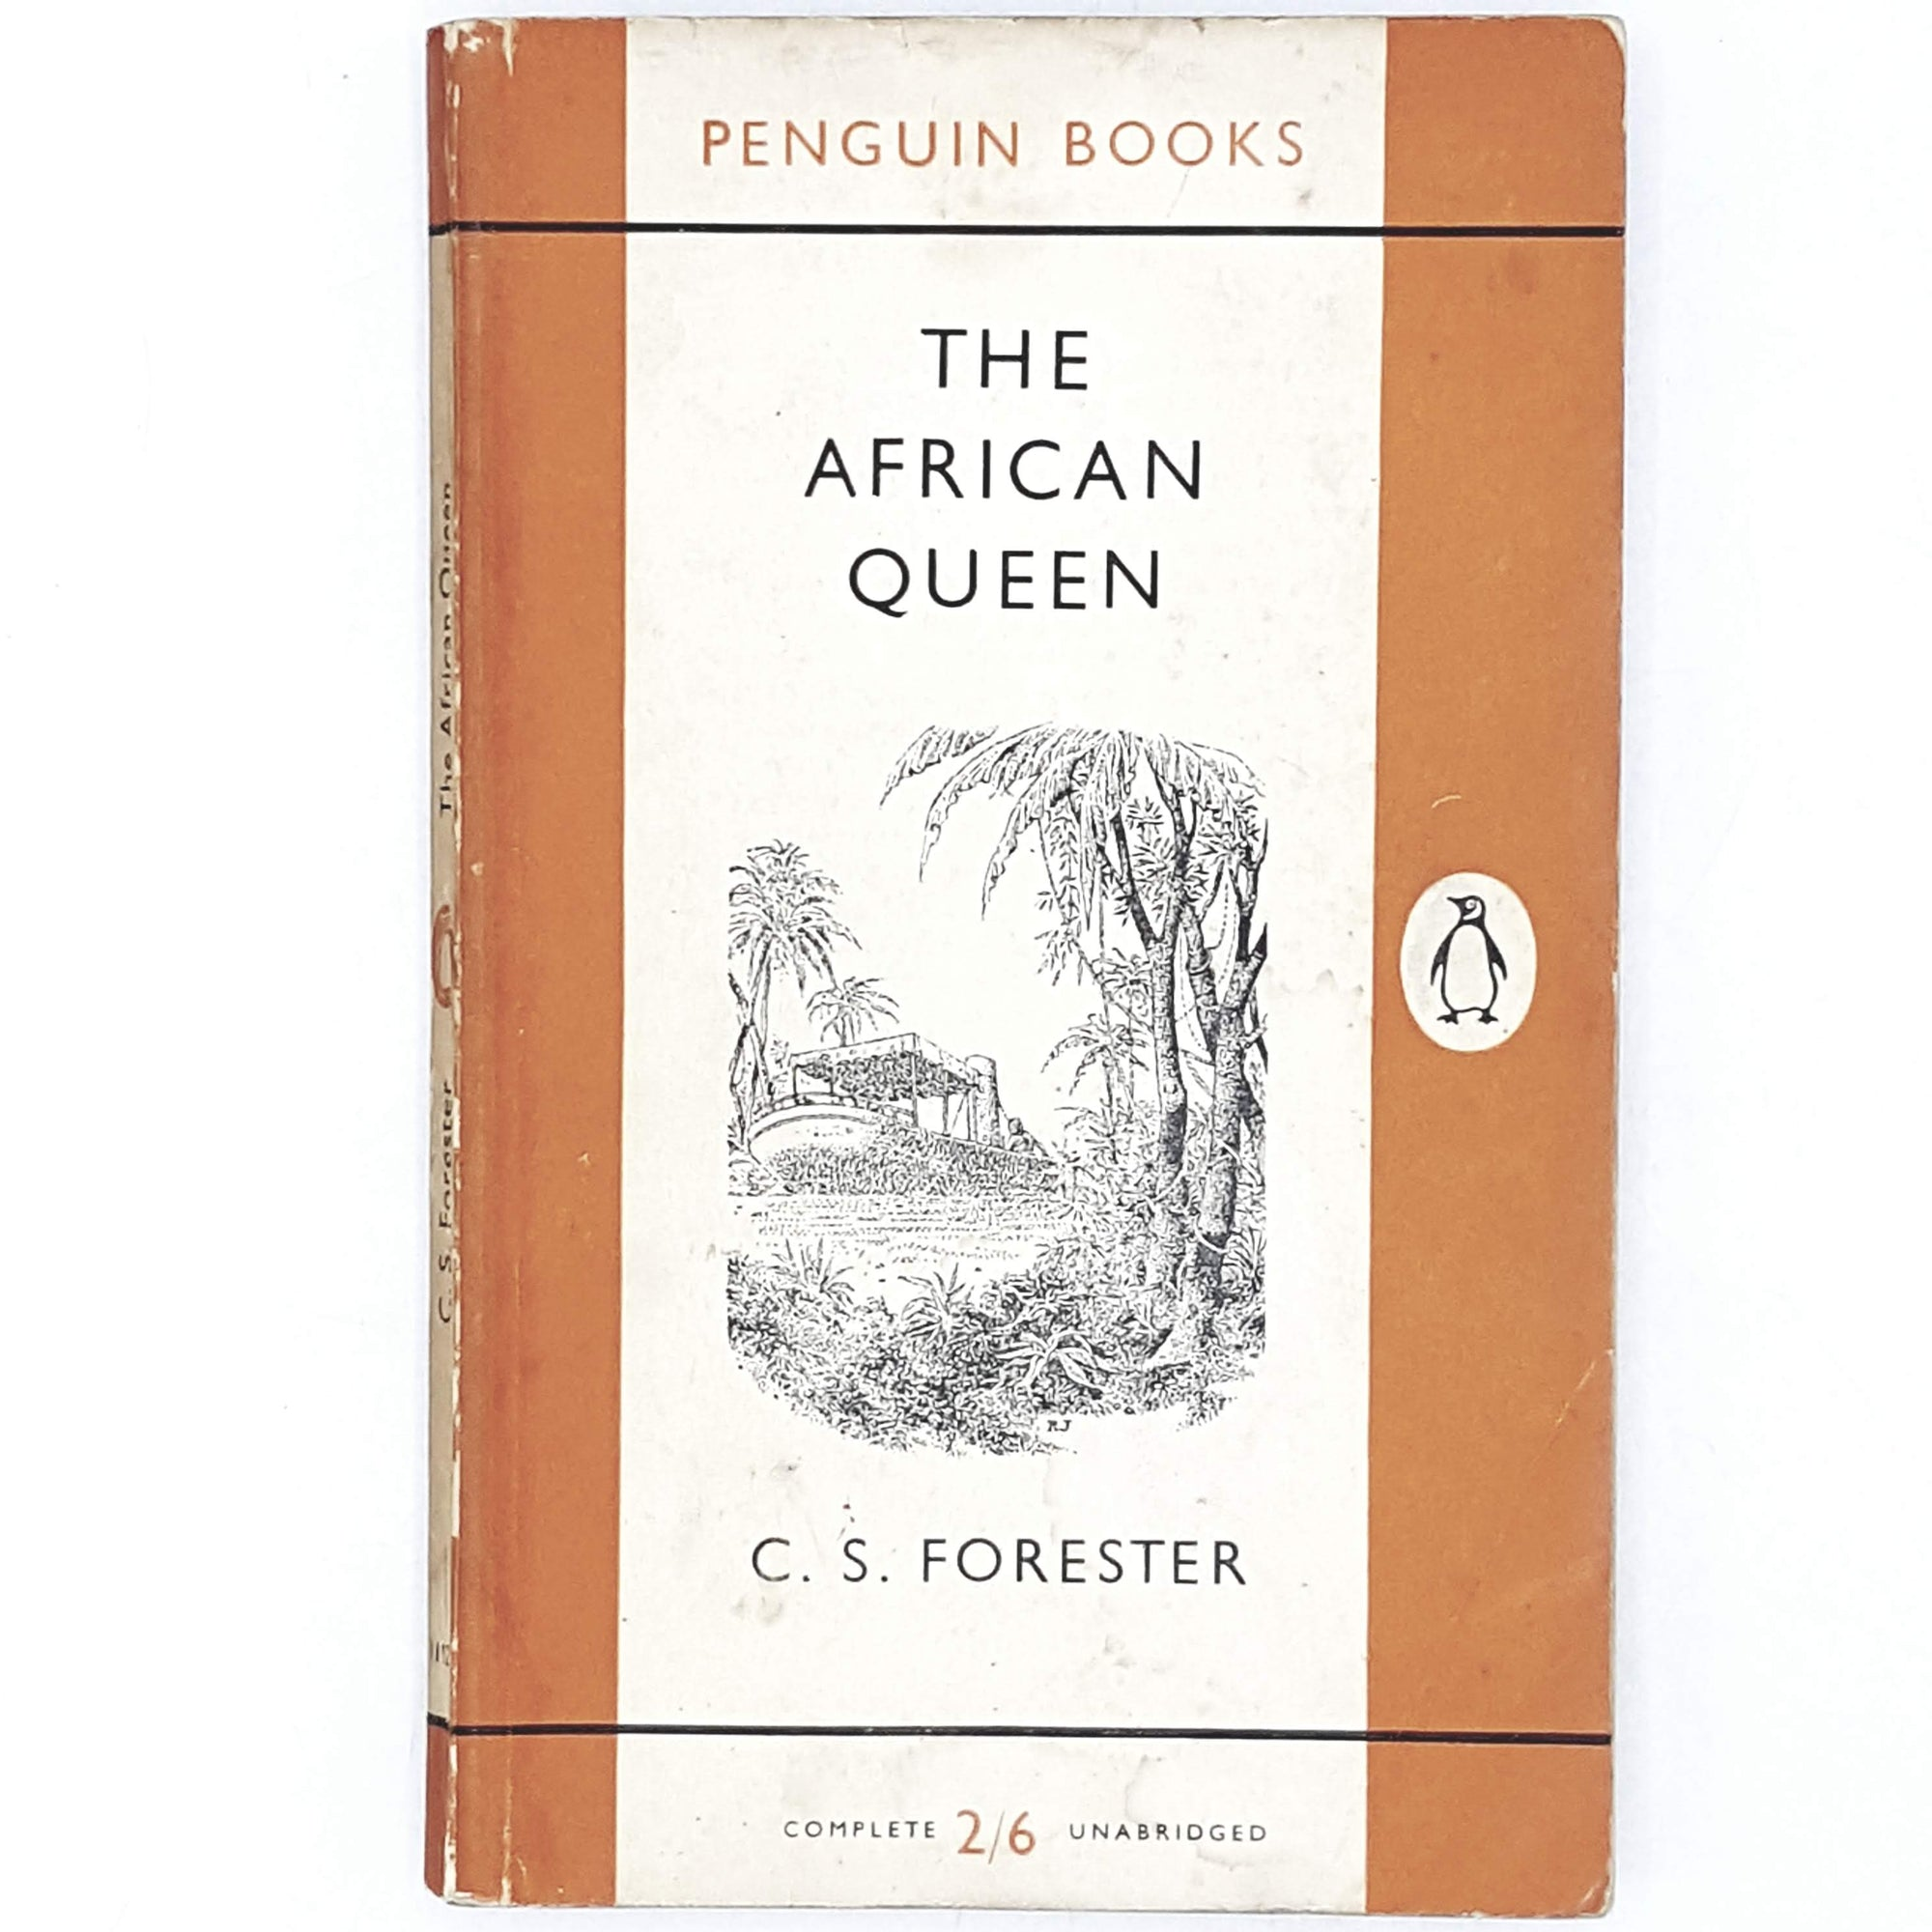 First Edition C. S. Forester's The African Queen 1956